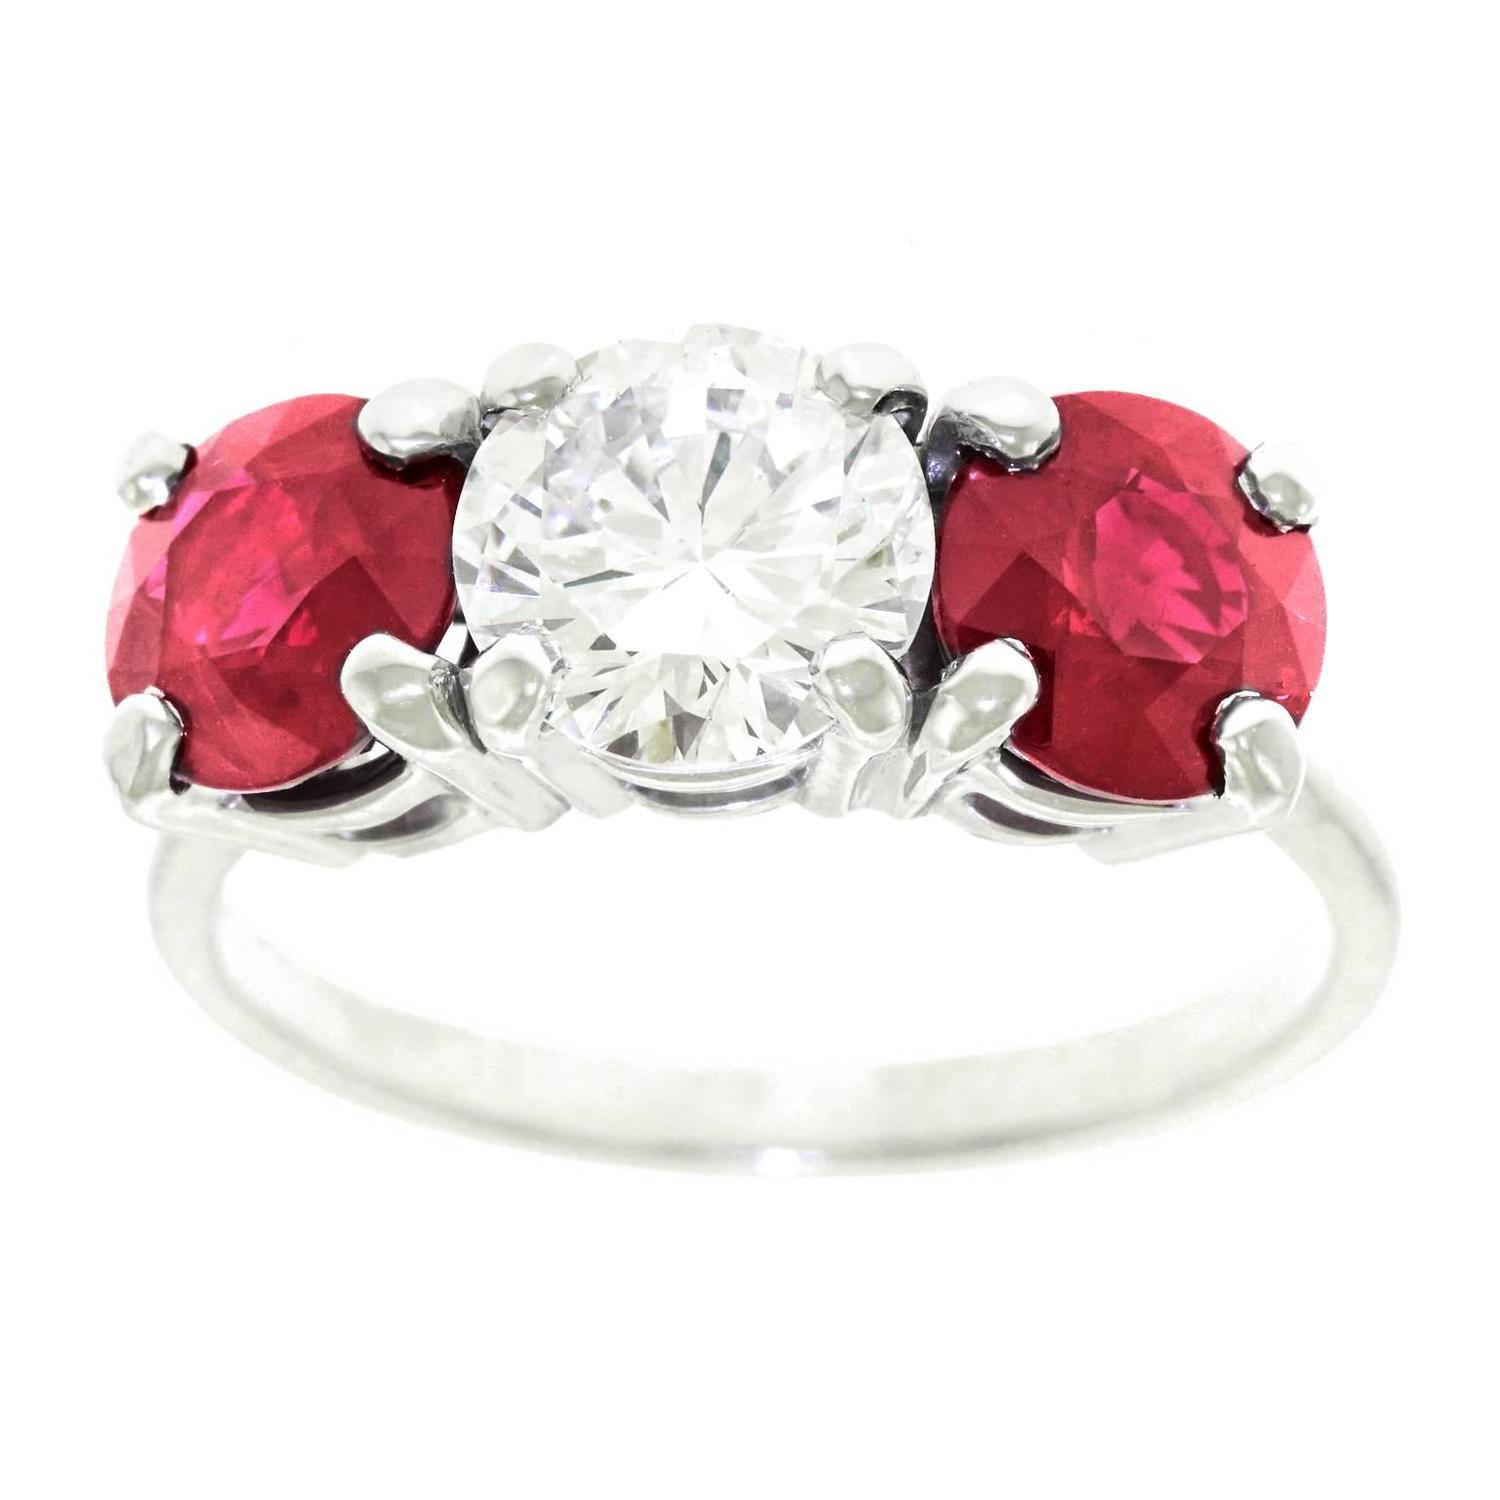 Cartier Engagement Rings   65 For Sale at 1stdibs 1950s Cartier Diamond and Ruby Platinum 3 Stone Engagement Ring GIA